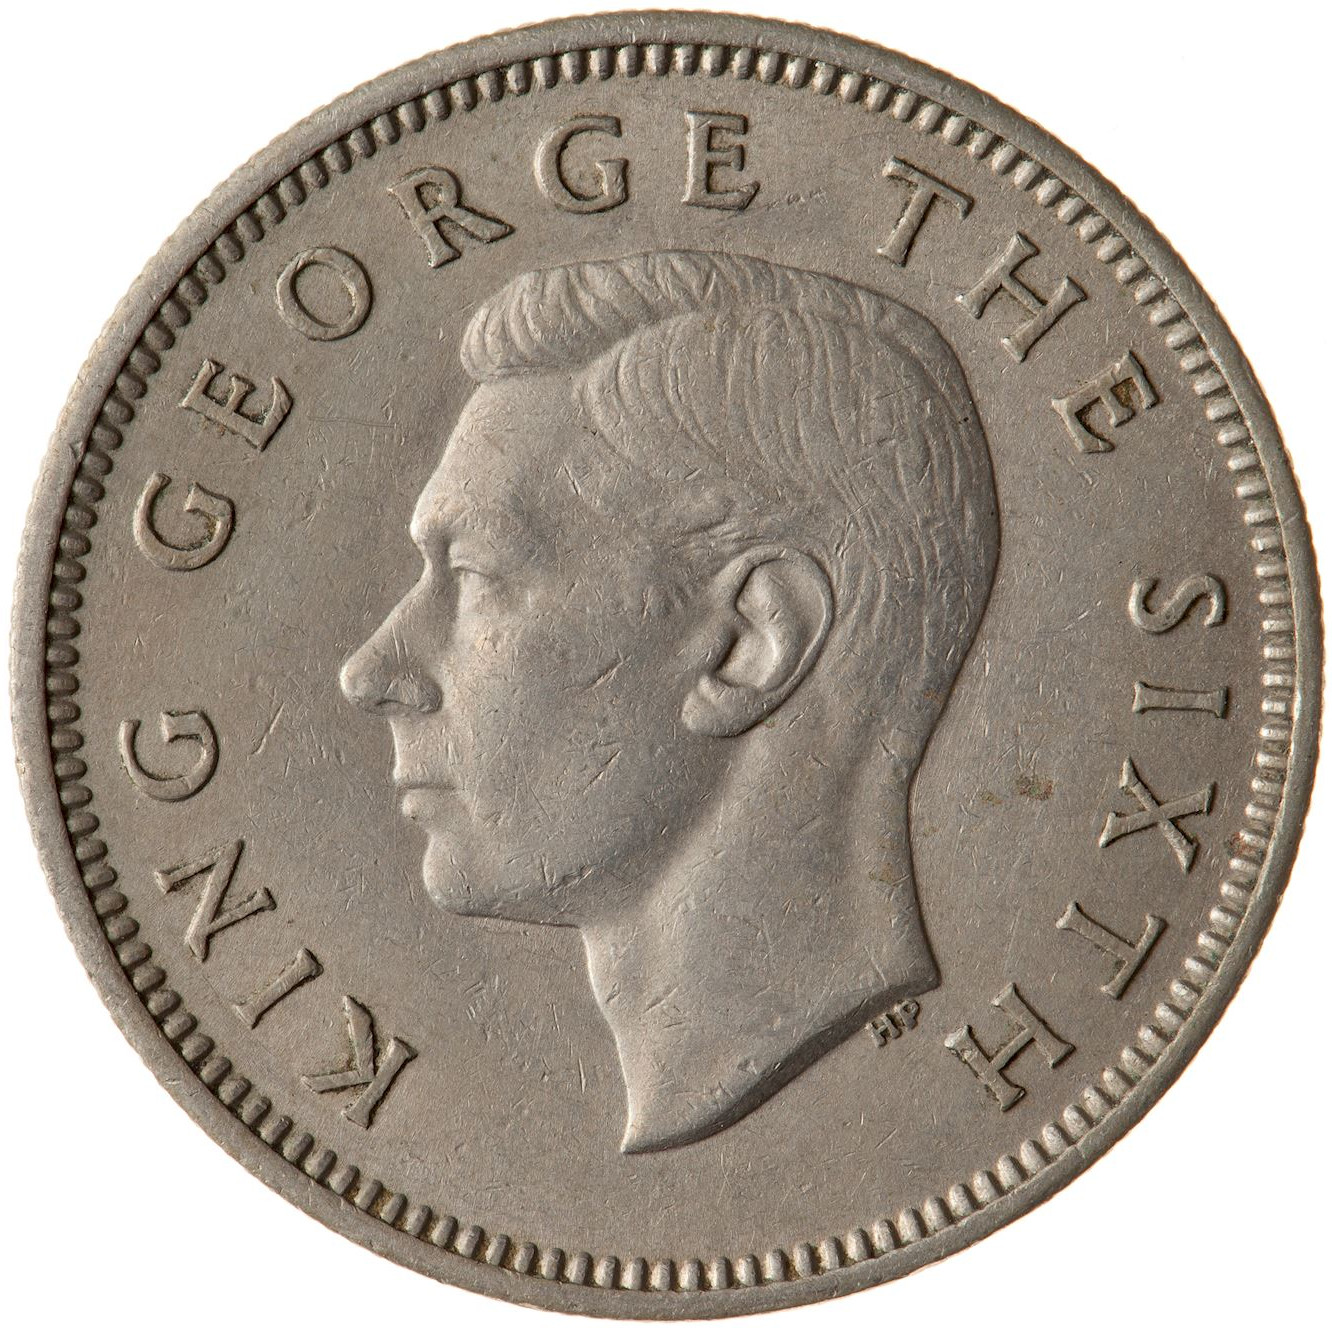 Shilling 1948: Photo Coin - 1 Shilling, New Zealand, 1948